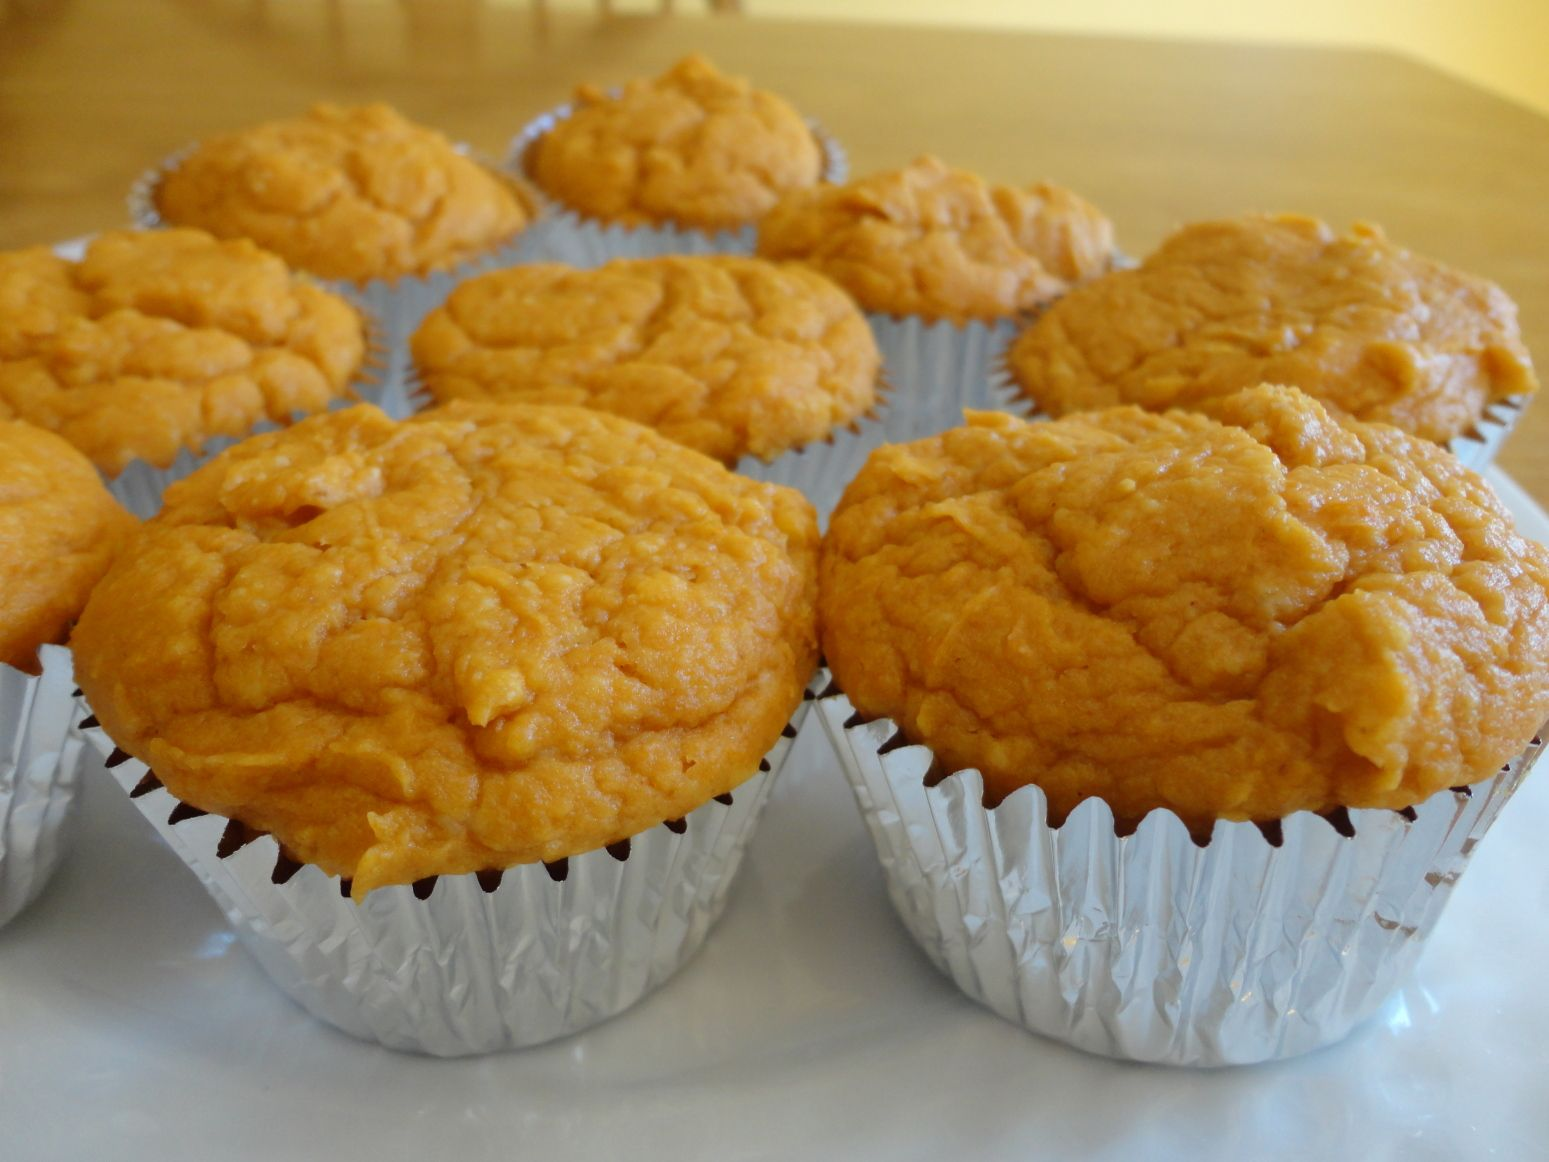 Weight Watchers Schnelle Kuchen Die Besten 25 43 Weight Watcher Muffins Ideen Auf Pinterest